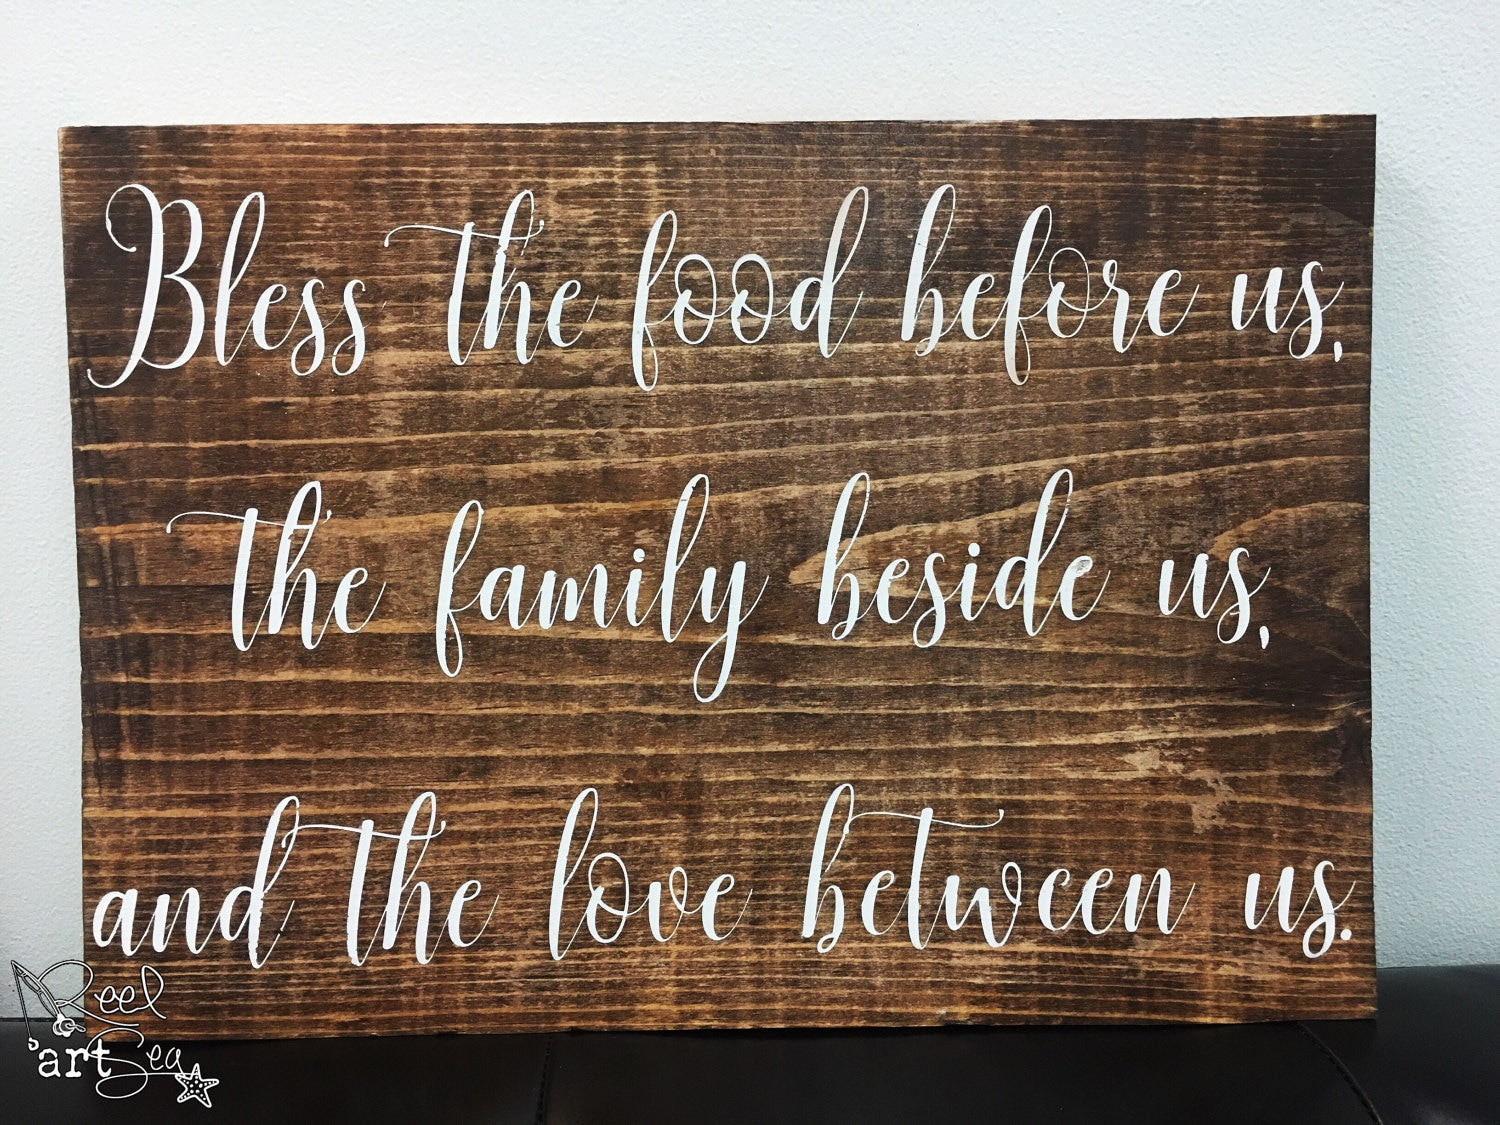 bless the food before us wood sign blessing rustic home decor. Black Bedroom Furniture Sets. Home Design Ideas